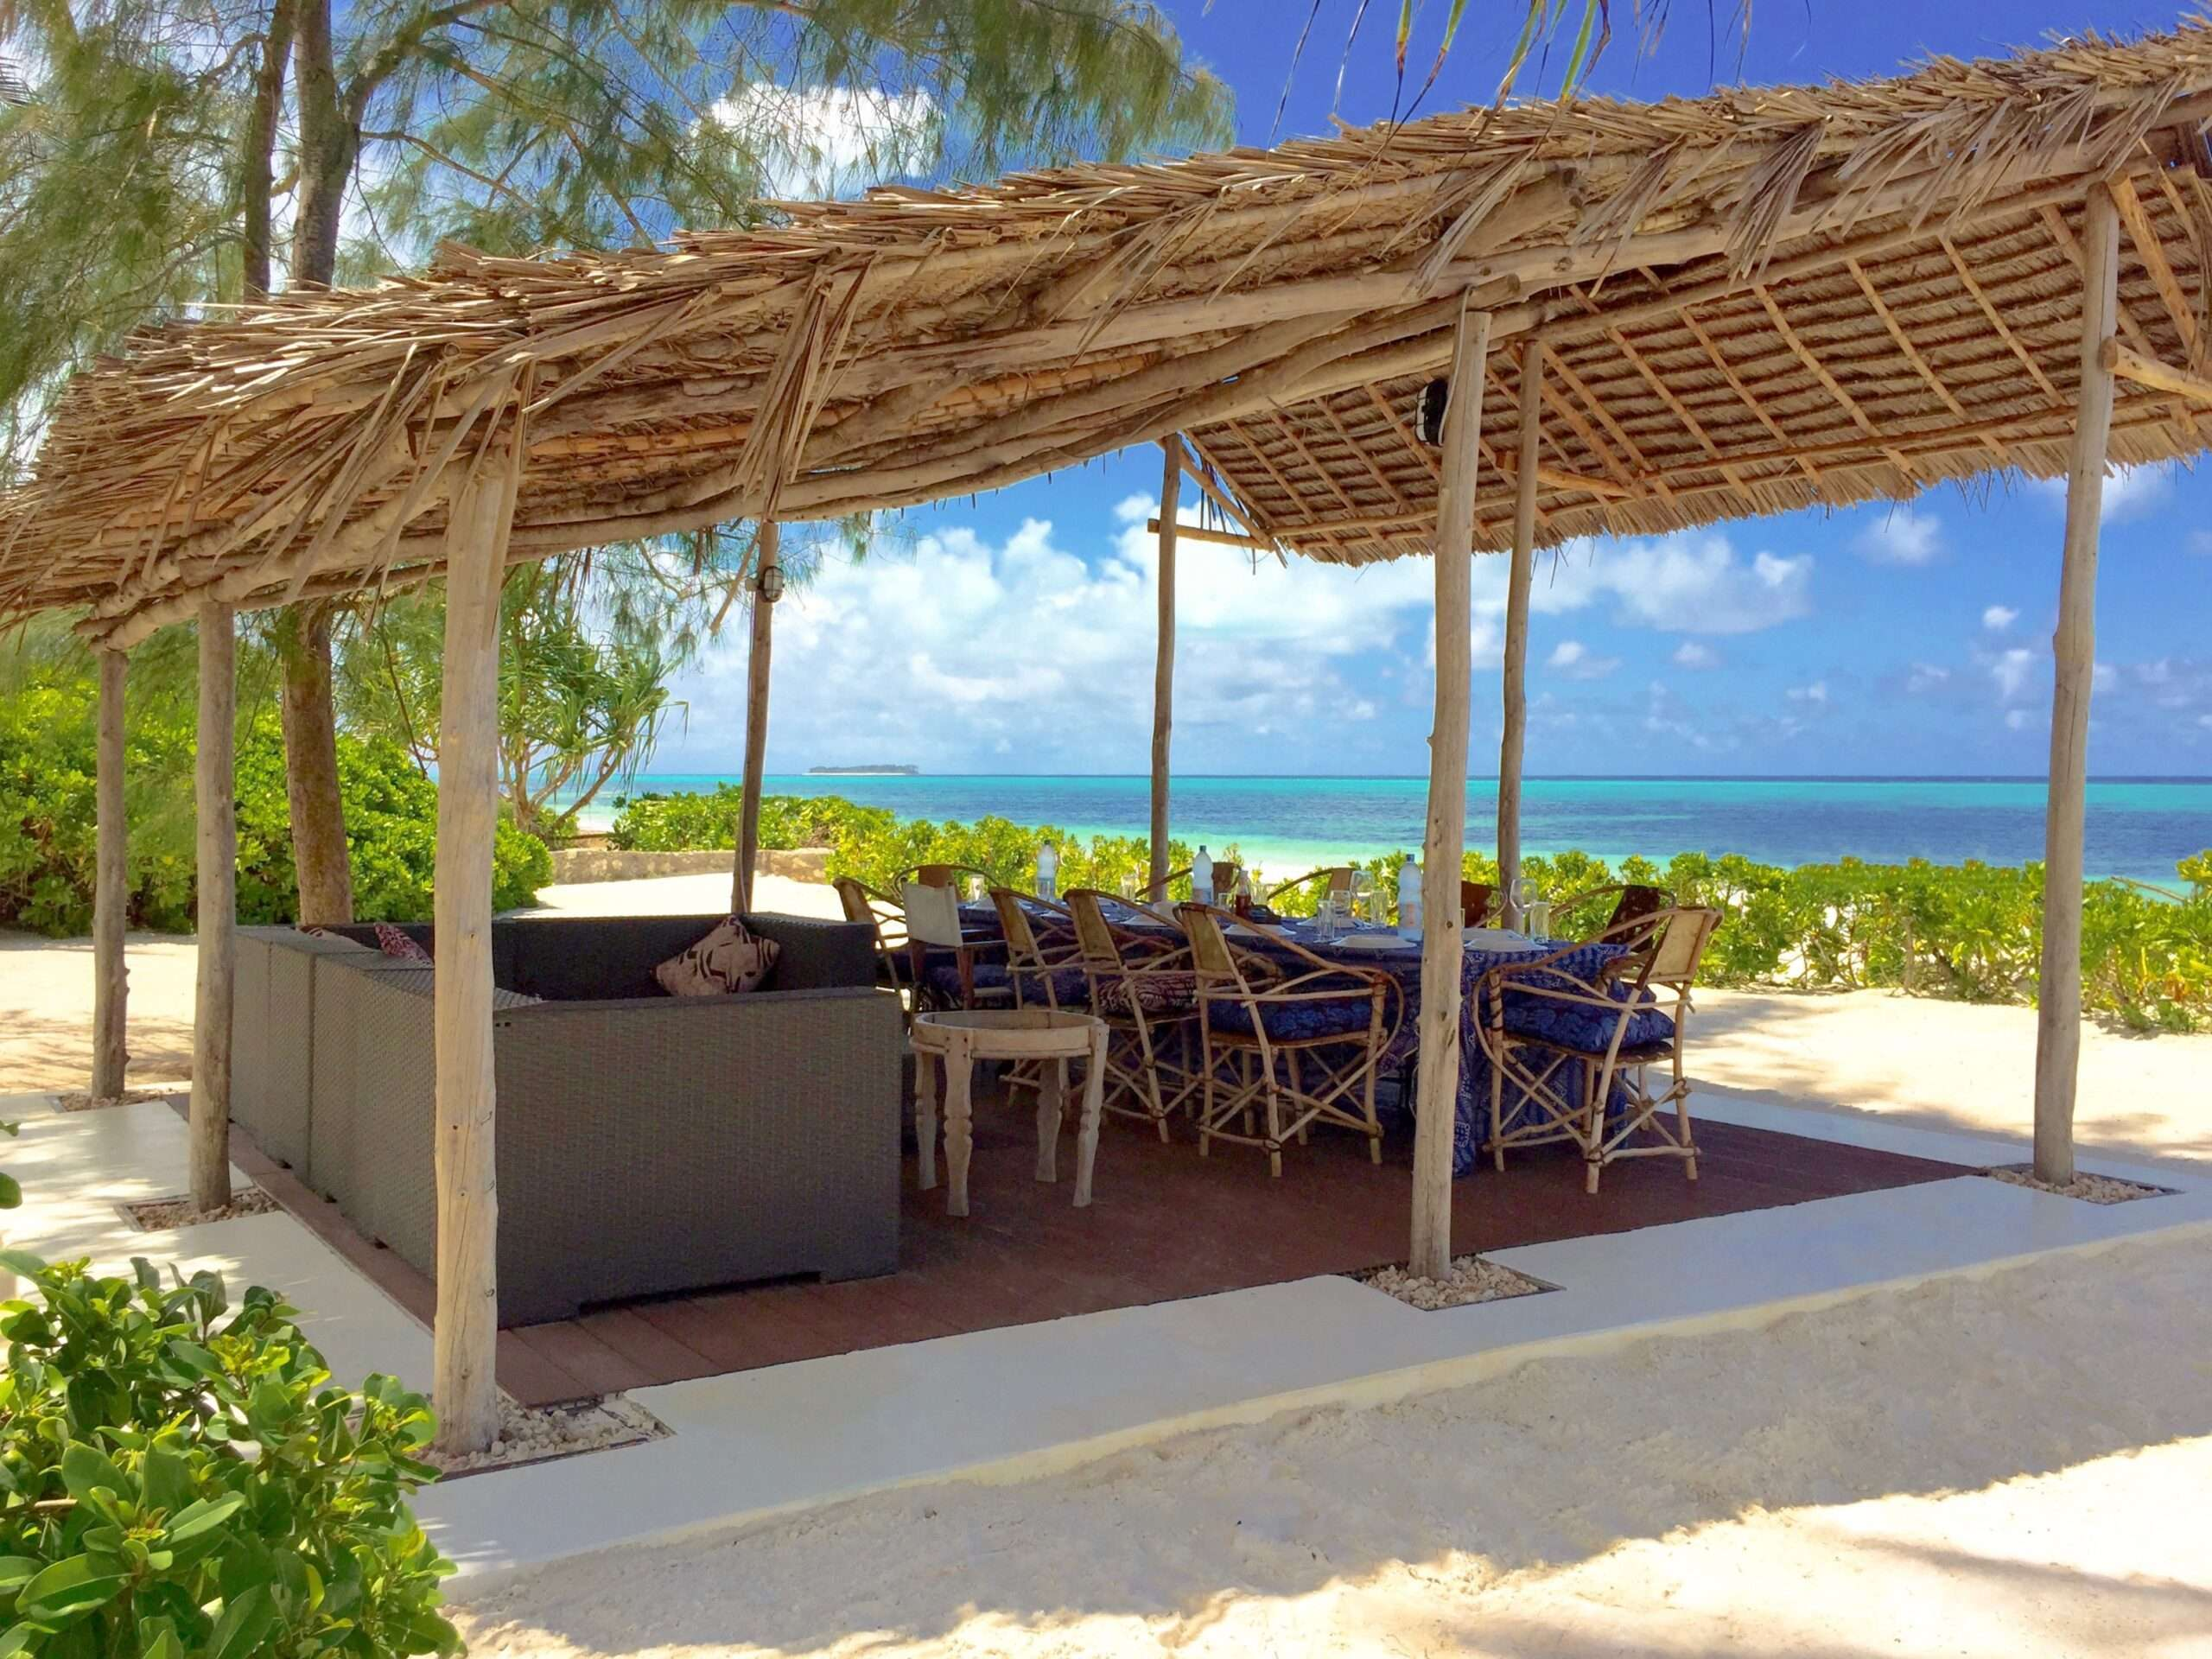 seating area and dining table on the beach at Turquoise Beach Villa Zanzibar